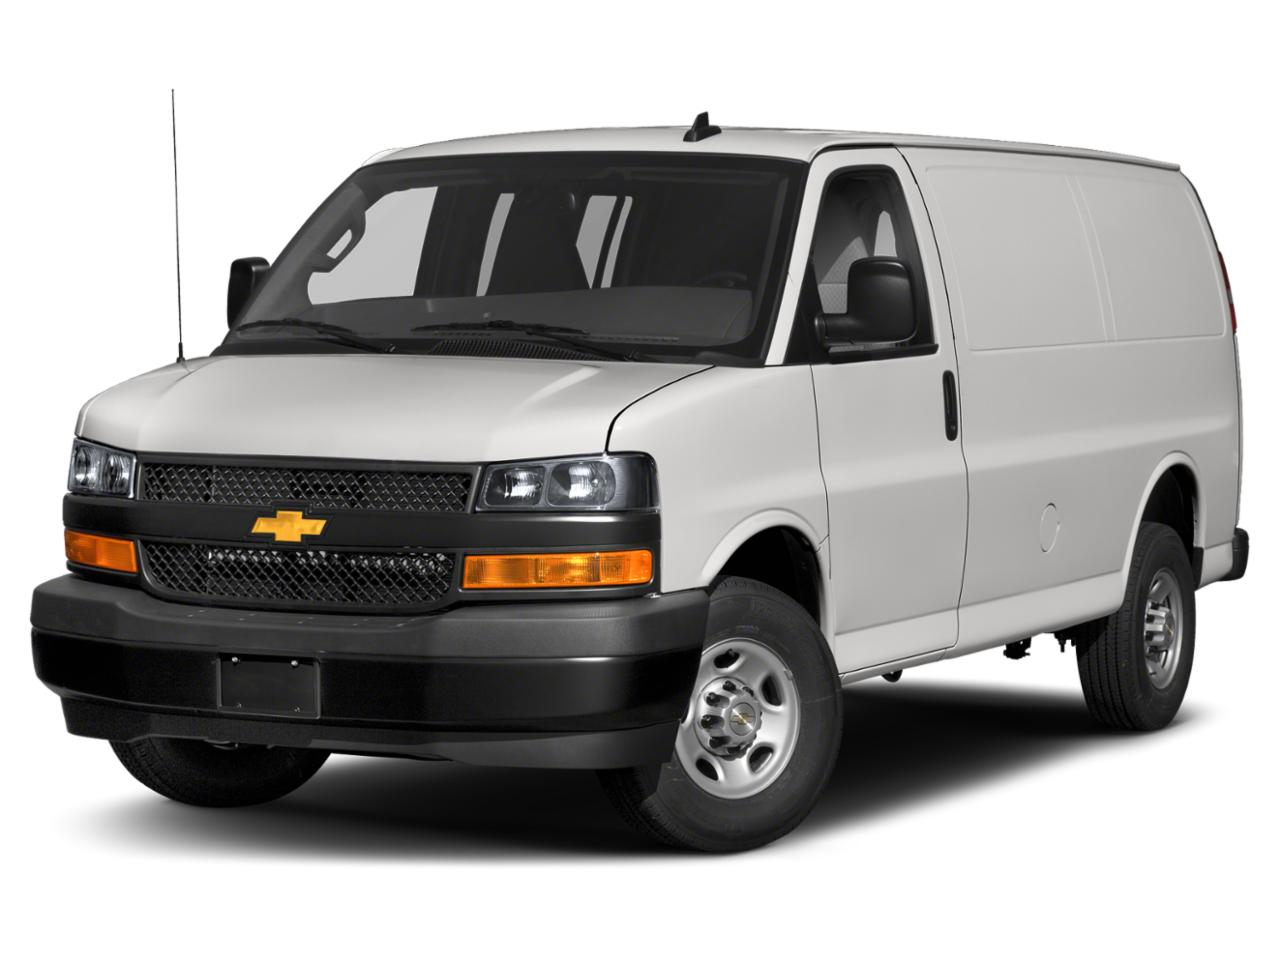 2018 Chevrolet Express Cargo Van Vehicle Photo in Danbury, CT 06810